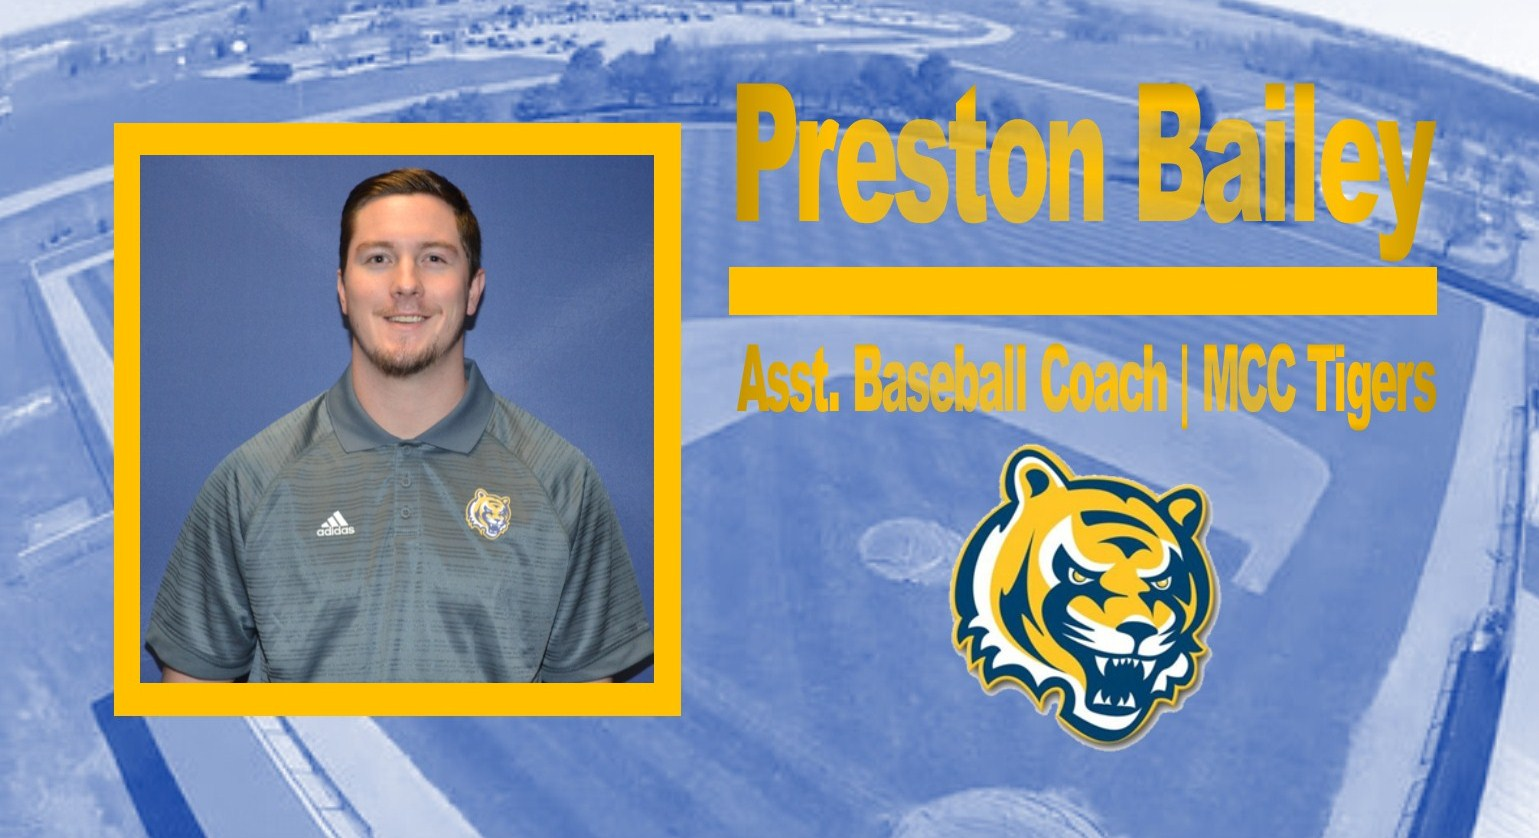 Preston Bailey announced Assistant Baseball Coach